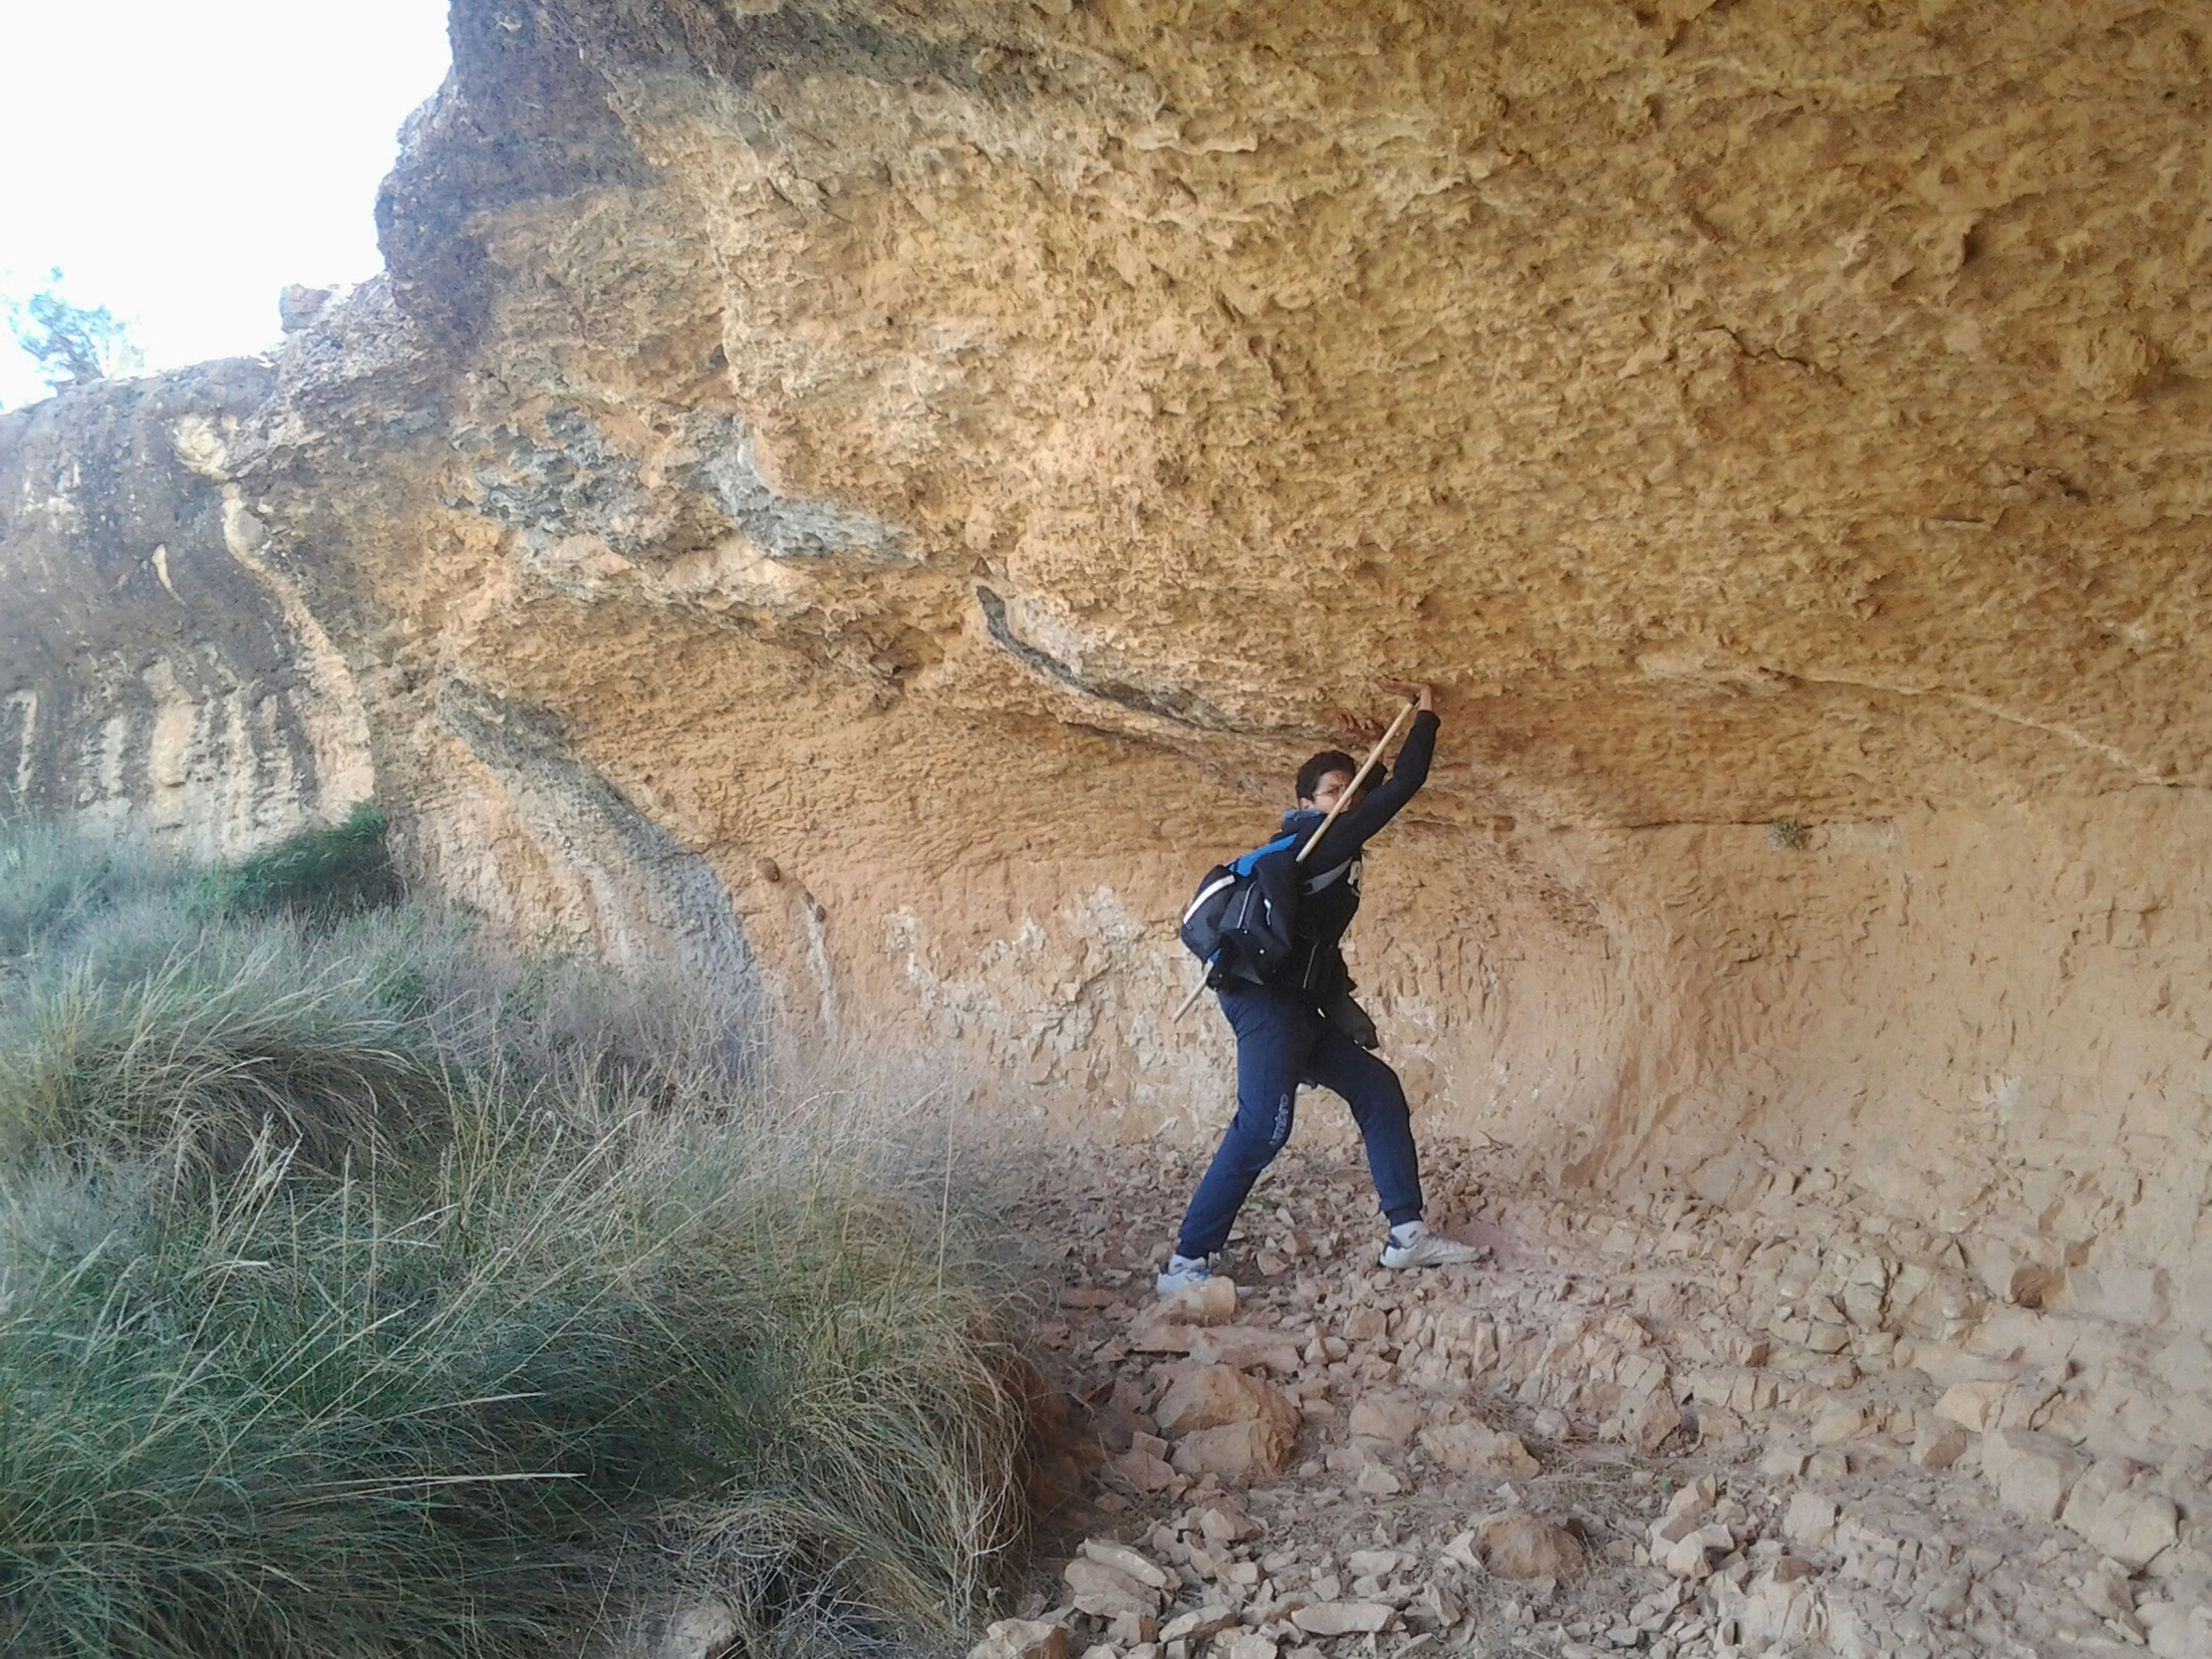 full length, one animal, rock - object, adventure, nature, standing, animal themes, mountain, sunlight, side view, day, leisure activity, outdoors, lifestyles, rock formation, landscape, men, motion